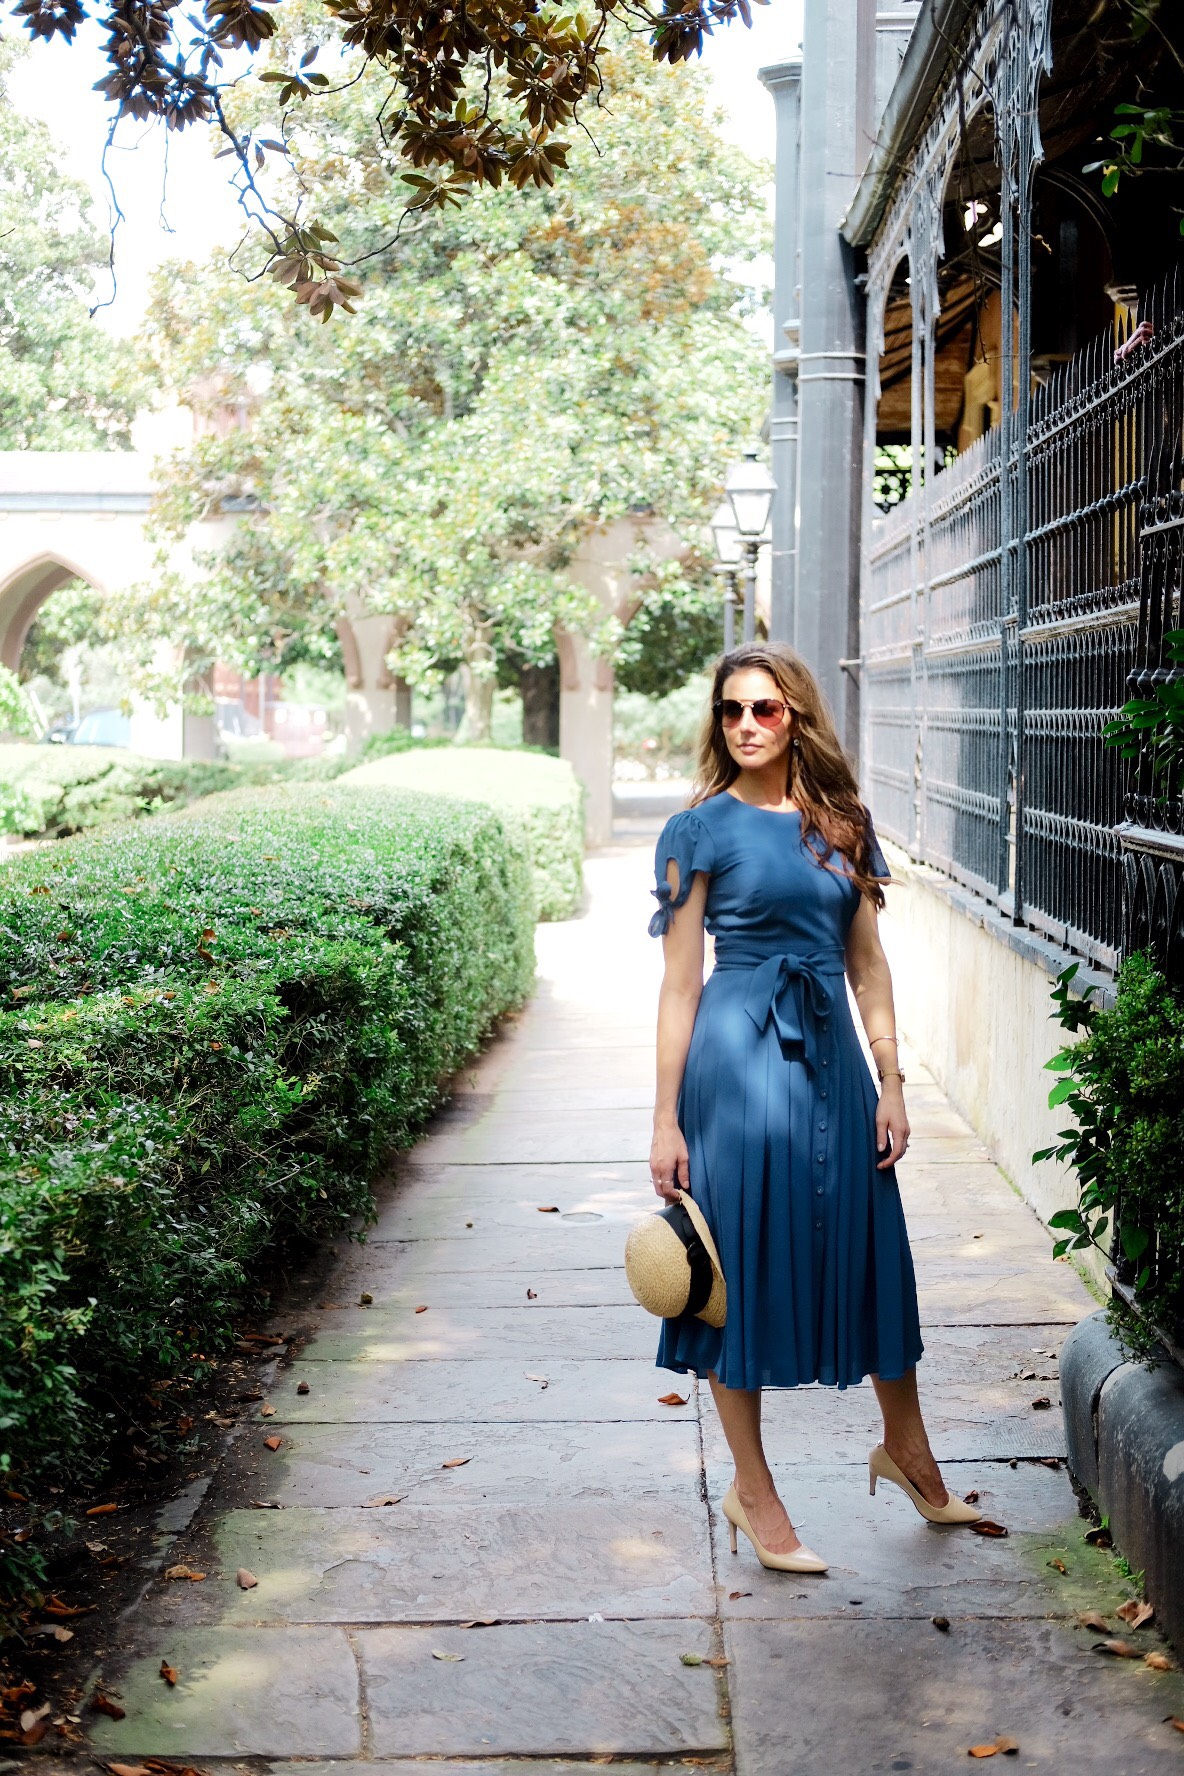 Blue Dress in Savannah Georgia